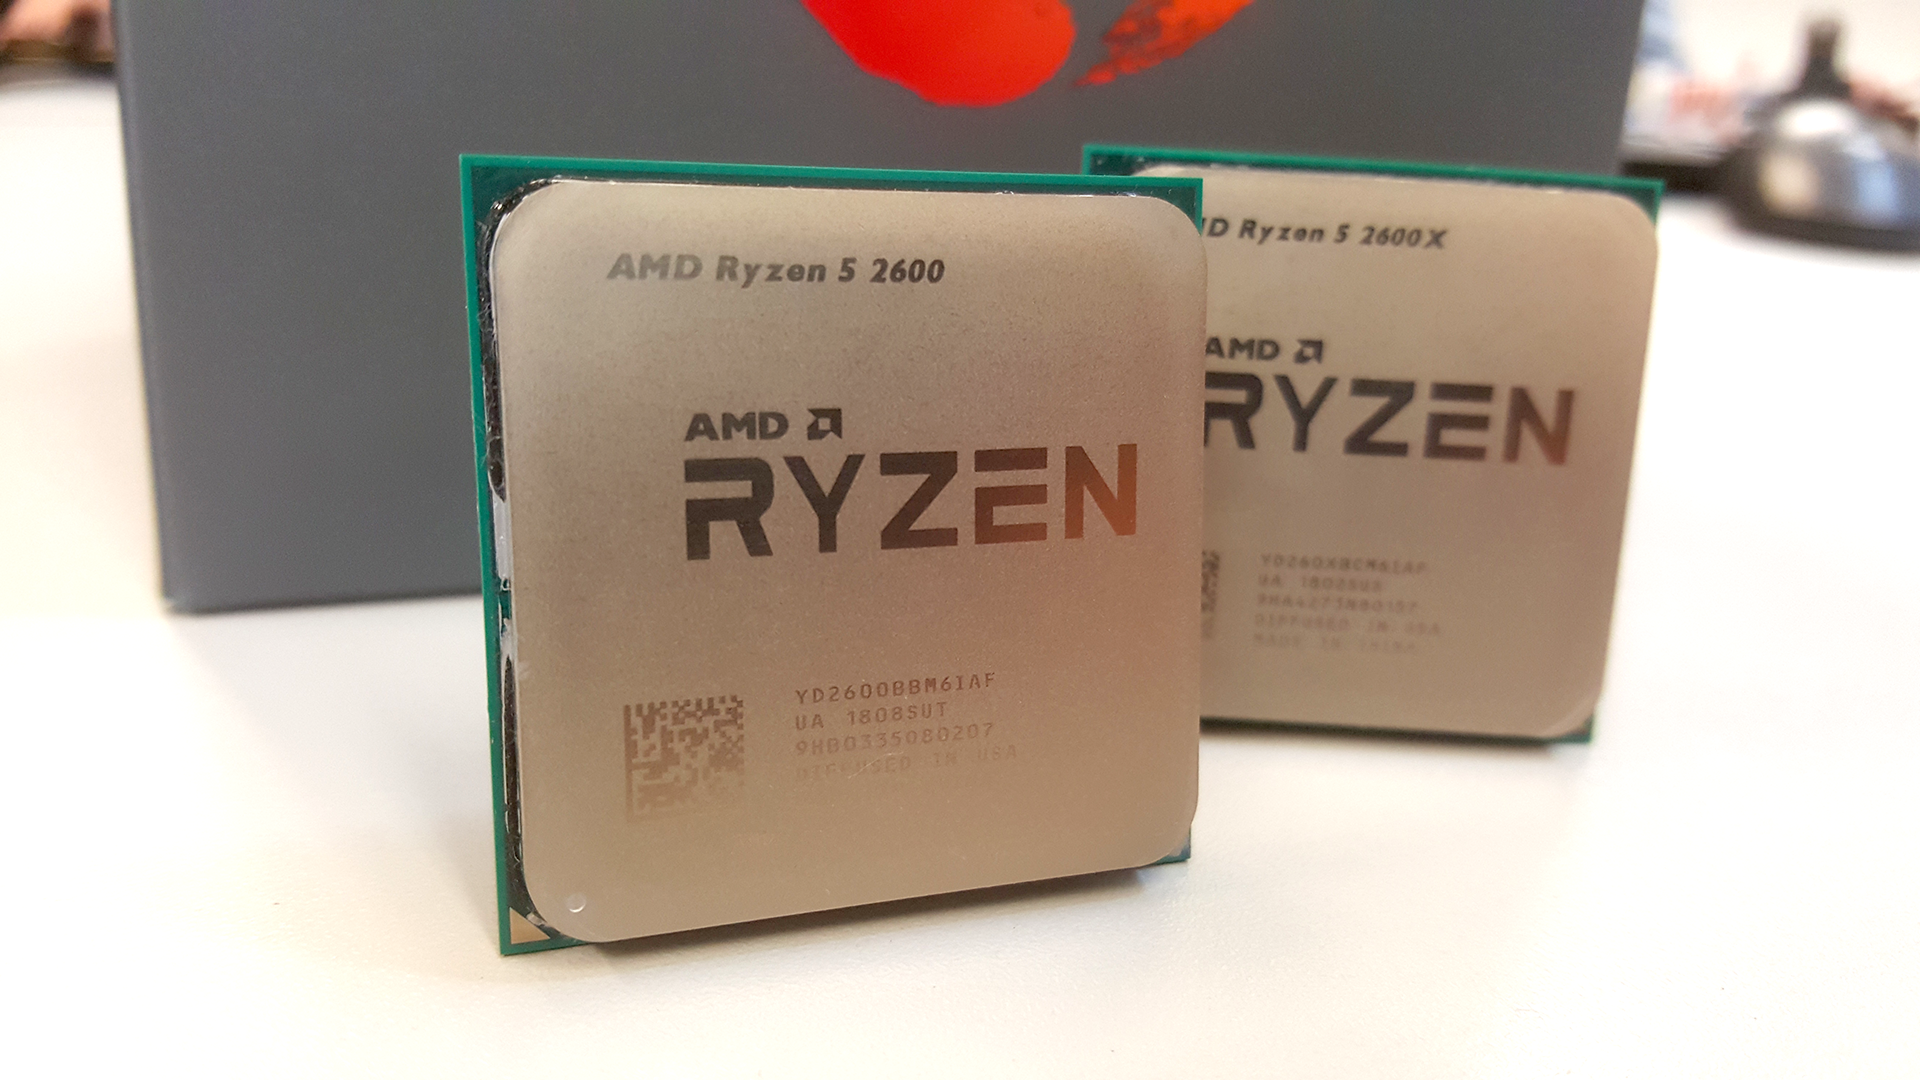 Amd Ryzen 5 2600 Review You Won T Miss The X From This Great Gaming Cpu Pcgamesn